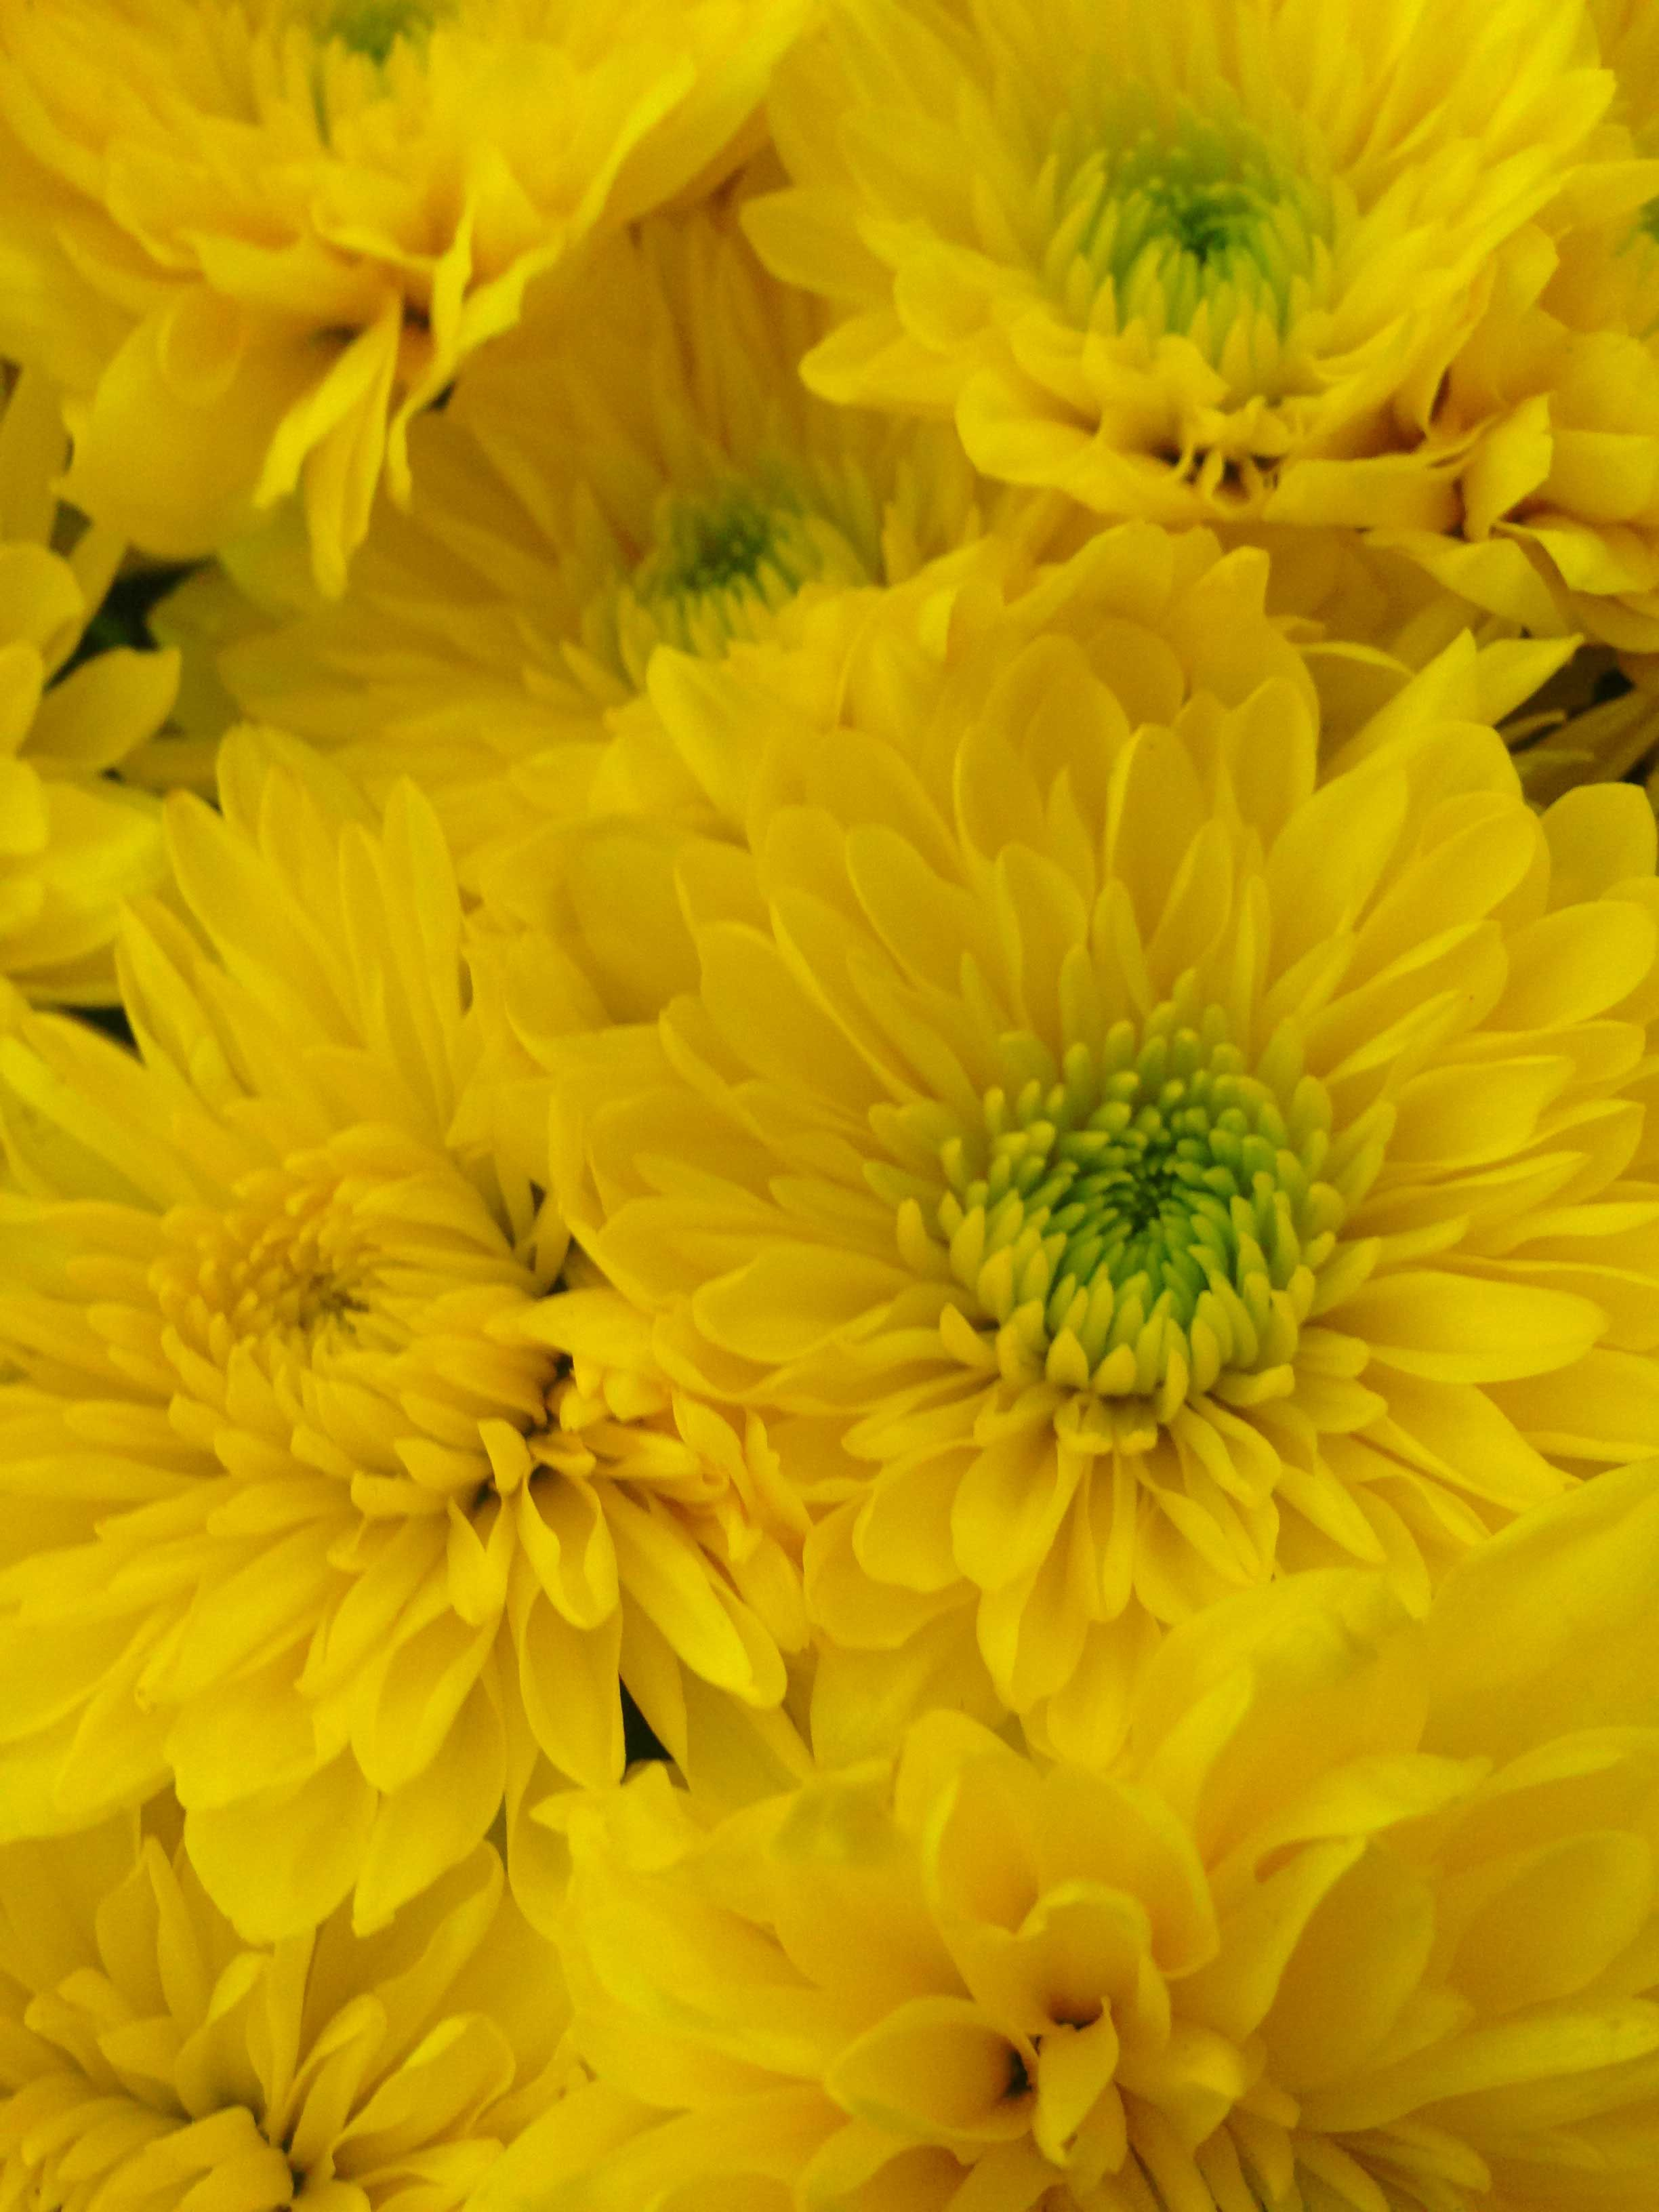 Chrysanthemum Chrysanthemum, Plants, Floral photography